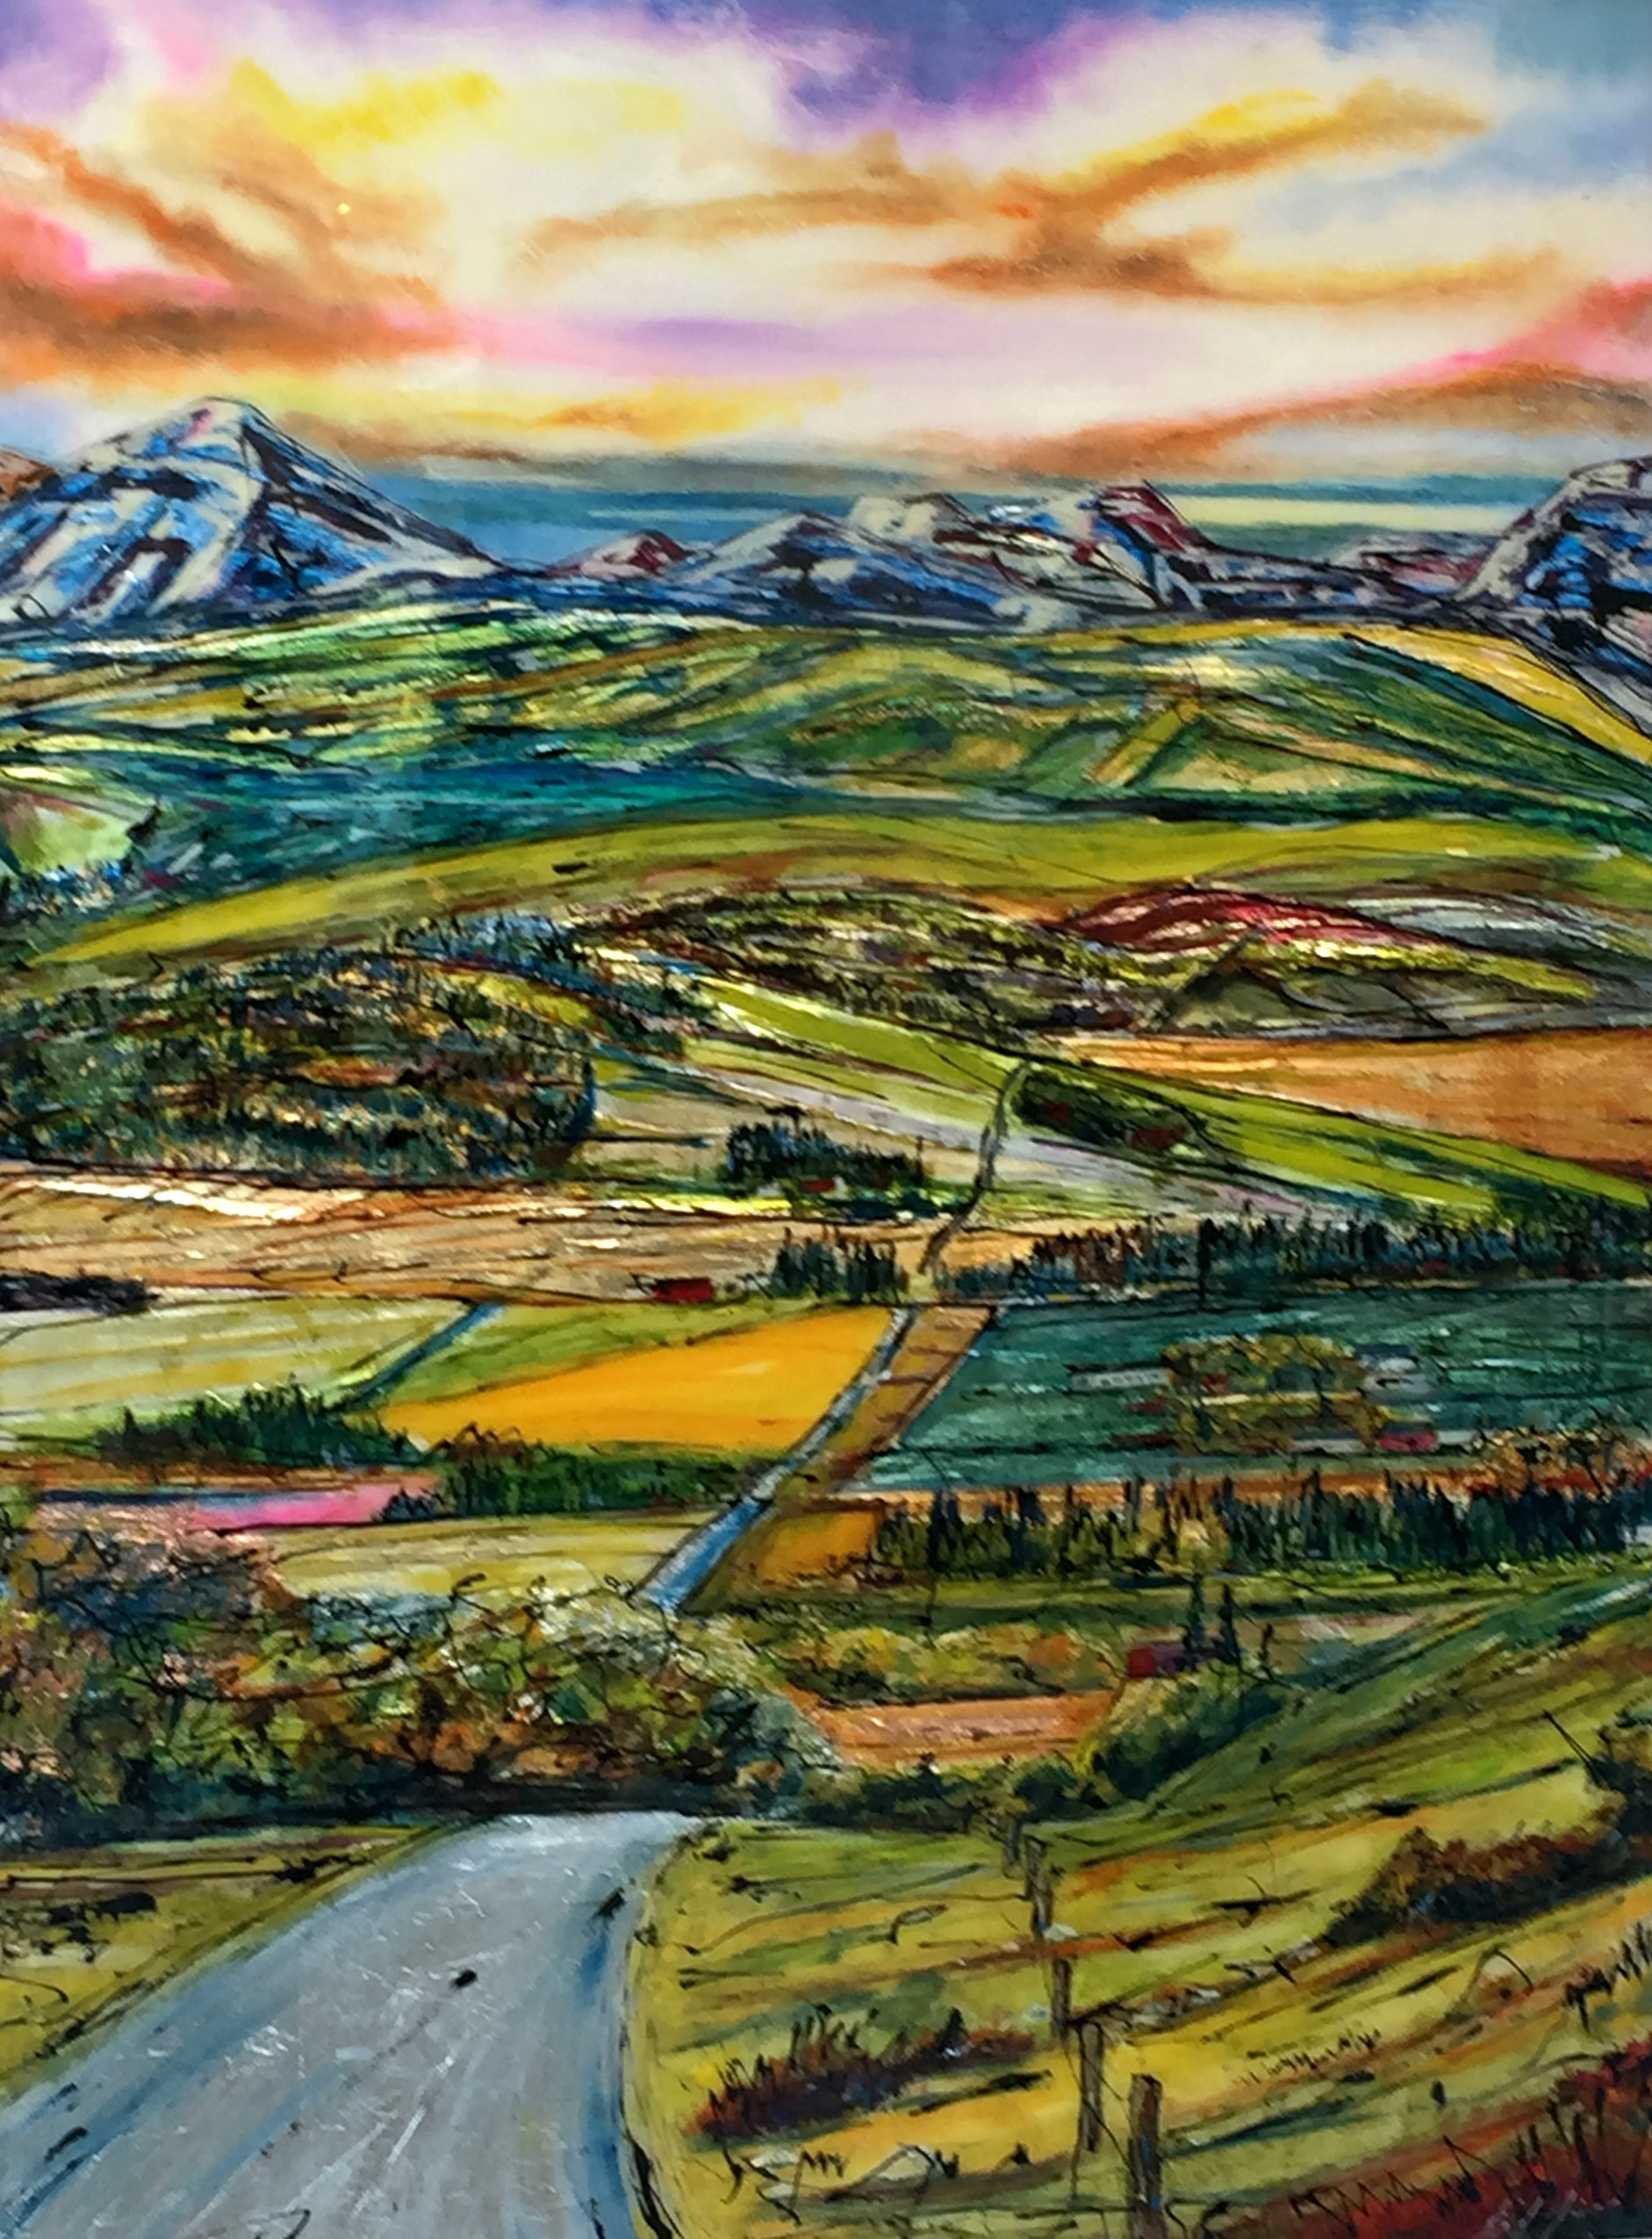 Stairway Too...  mixed media landscape painting by David Zimmerman | Effusion Art Gallery + Cast Glass Studio, Invermere BC